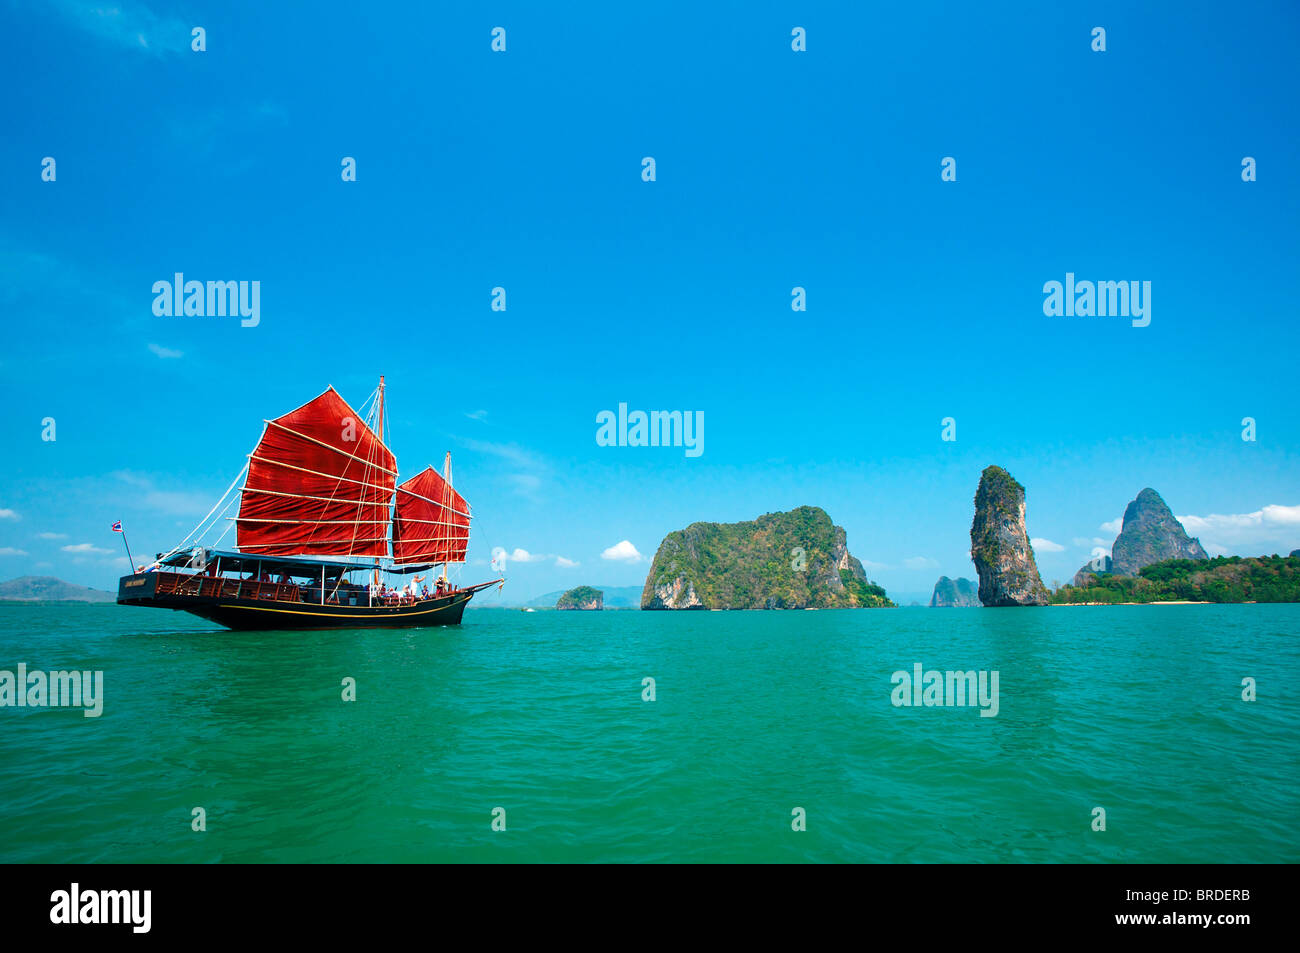 Junk in the Phang Nga Bay, Phuket, Thailand - Stock Image